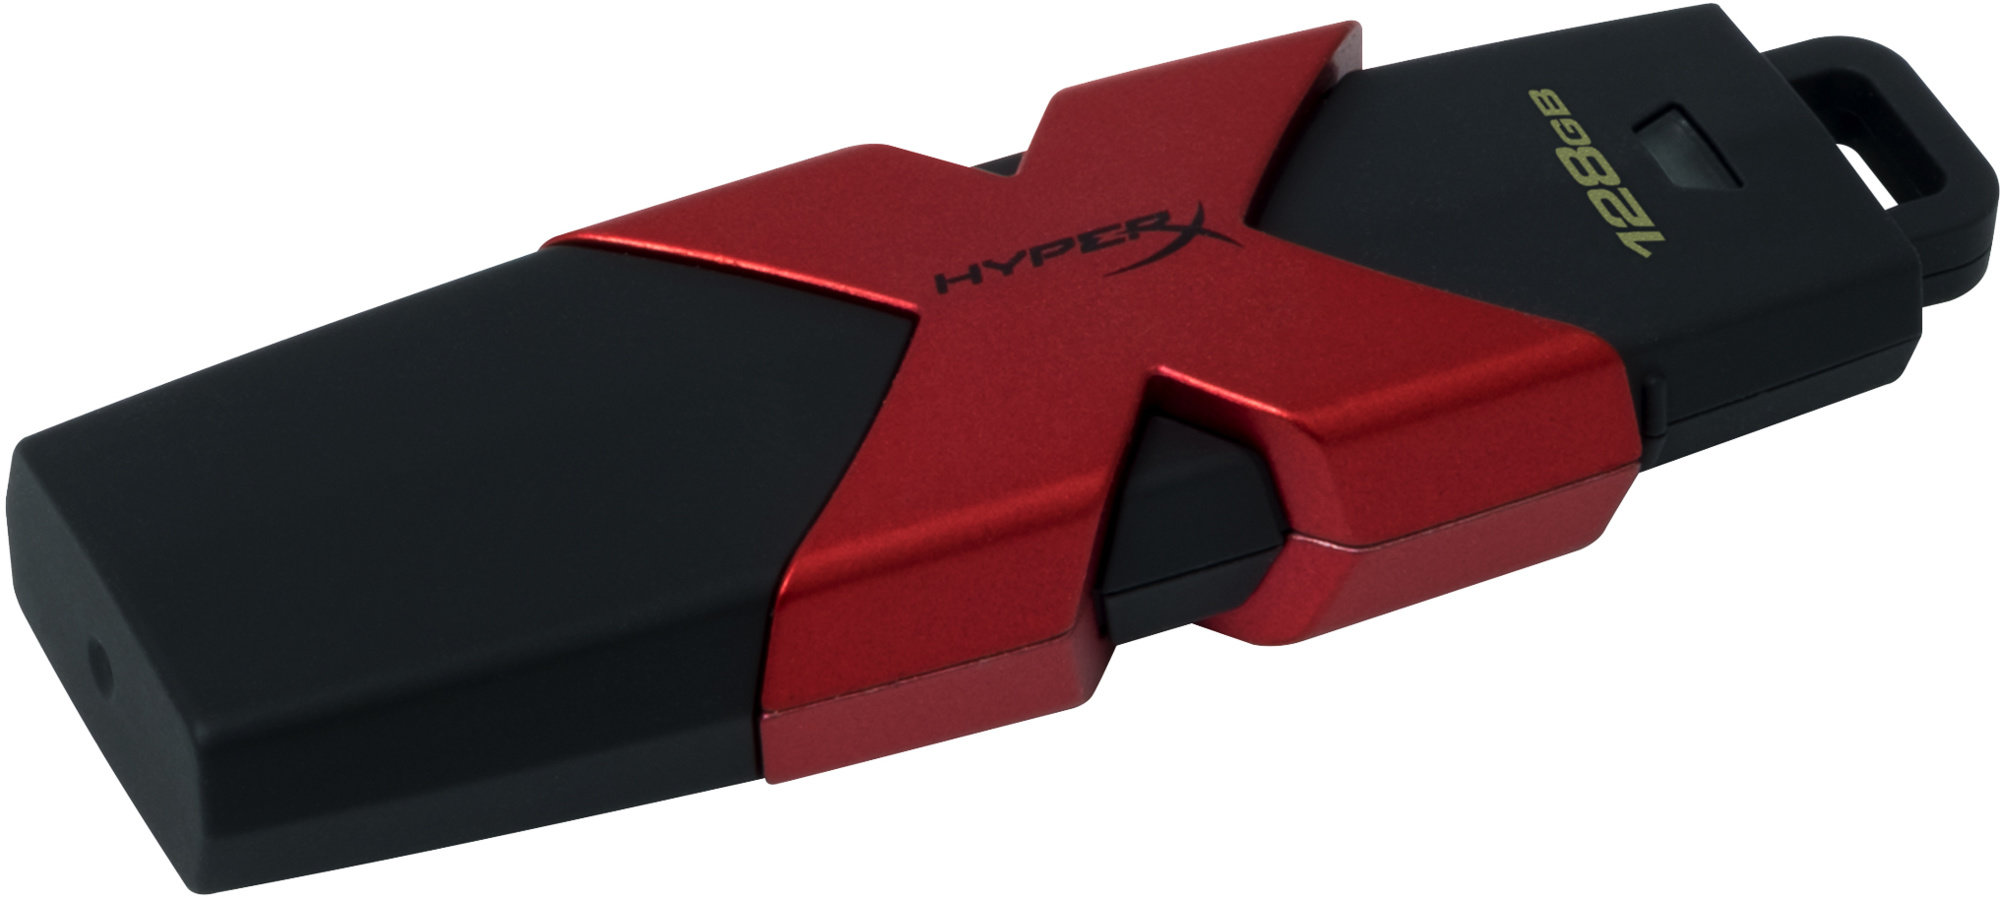 128GB Kingston USB 3.1/3.0 HyperX Savage 350R/250W